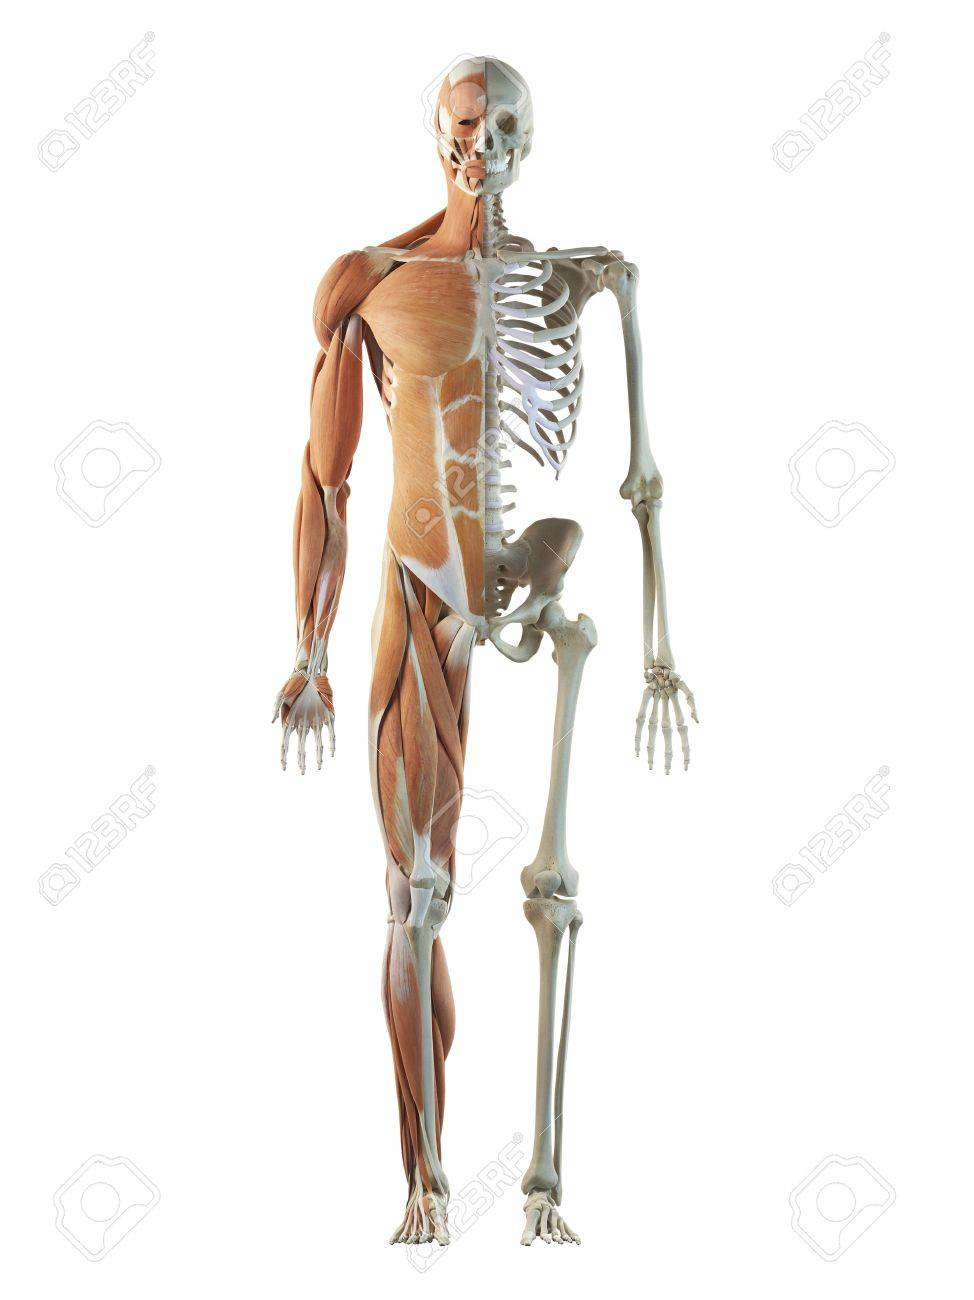 Human Musculoskeletal System Artwork Stock Photo Picture And